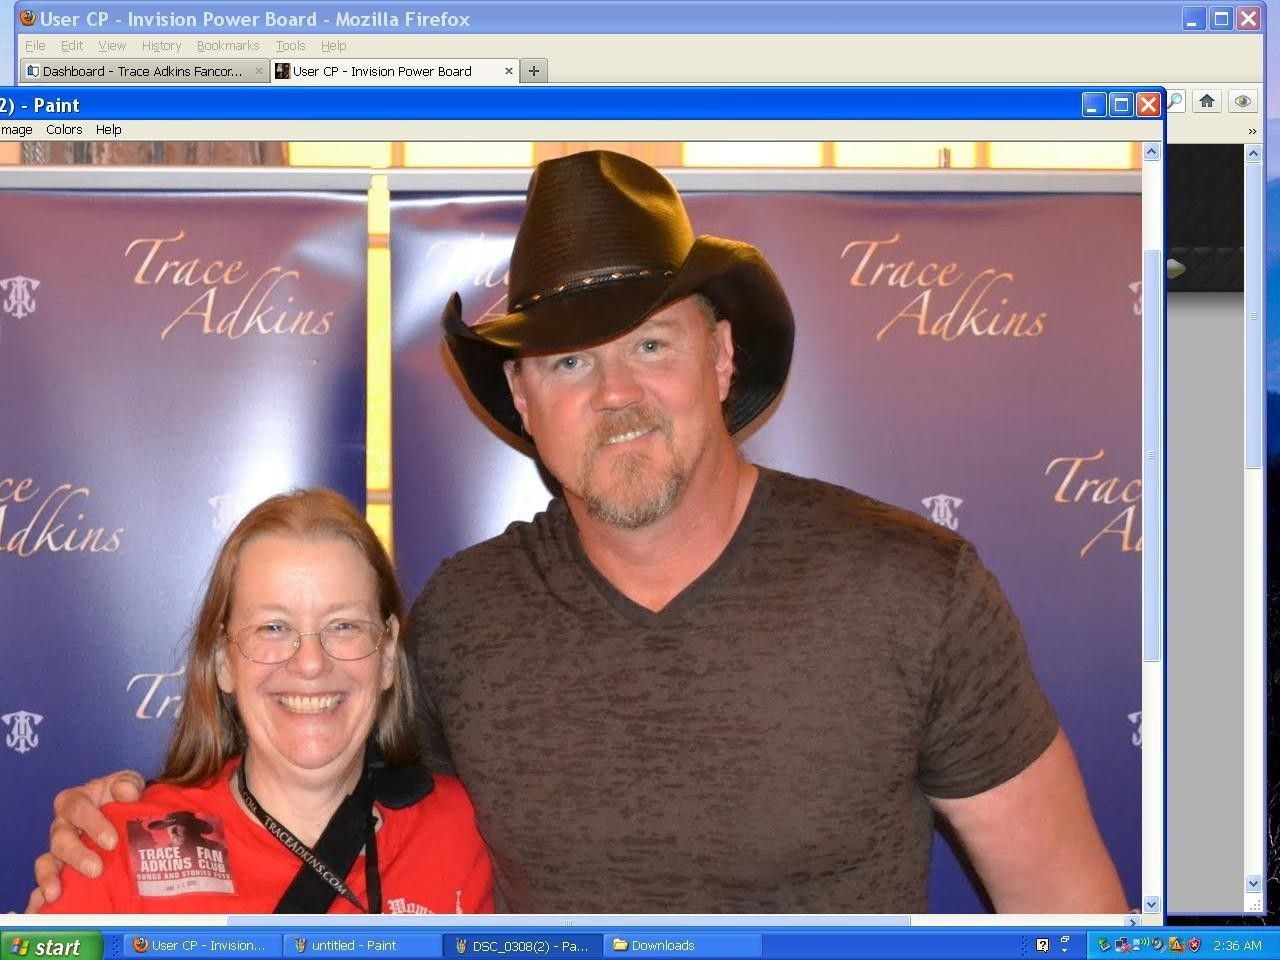 My first meet and greet in 2012 trace adkins pinterest explore trace adkins meet and more kristyandbryce Choice Image